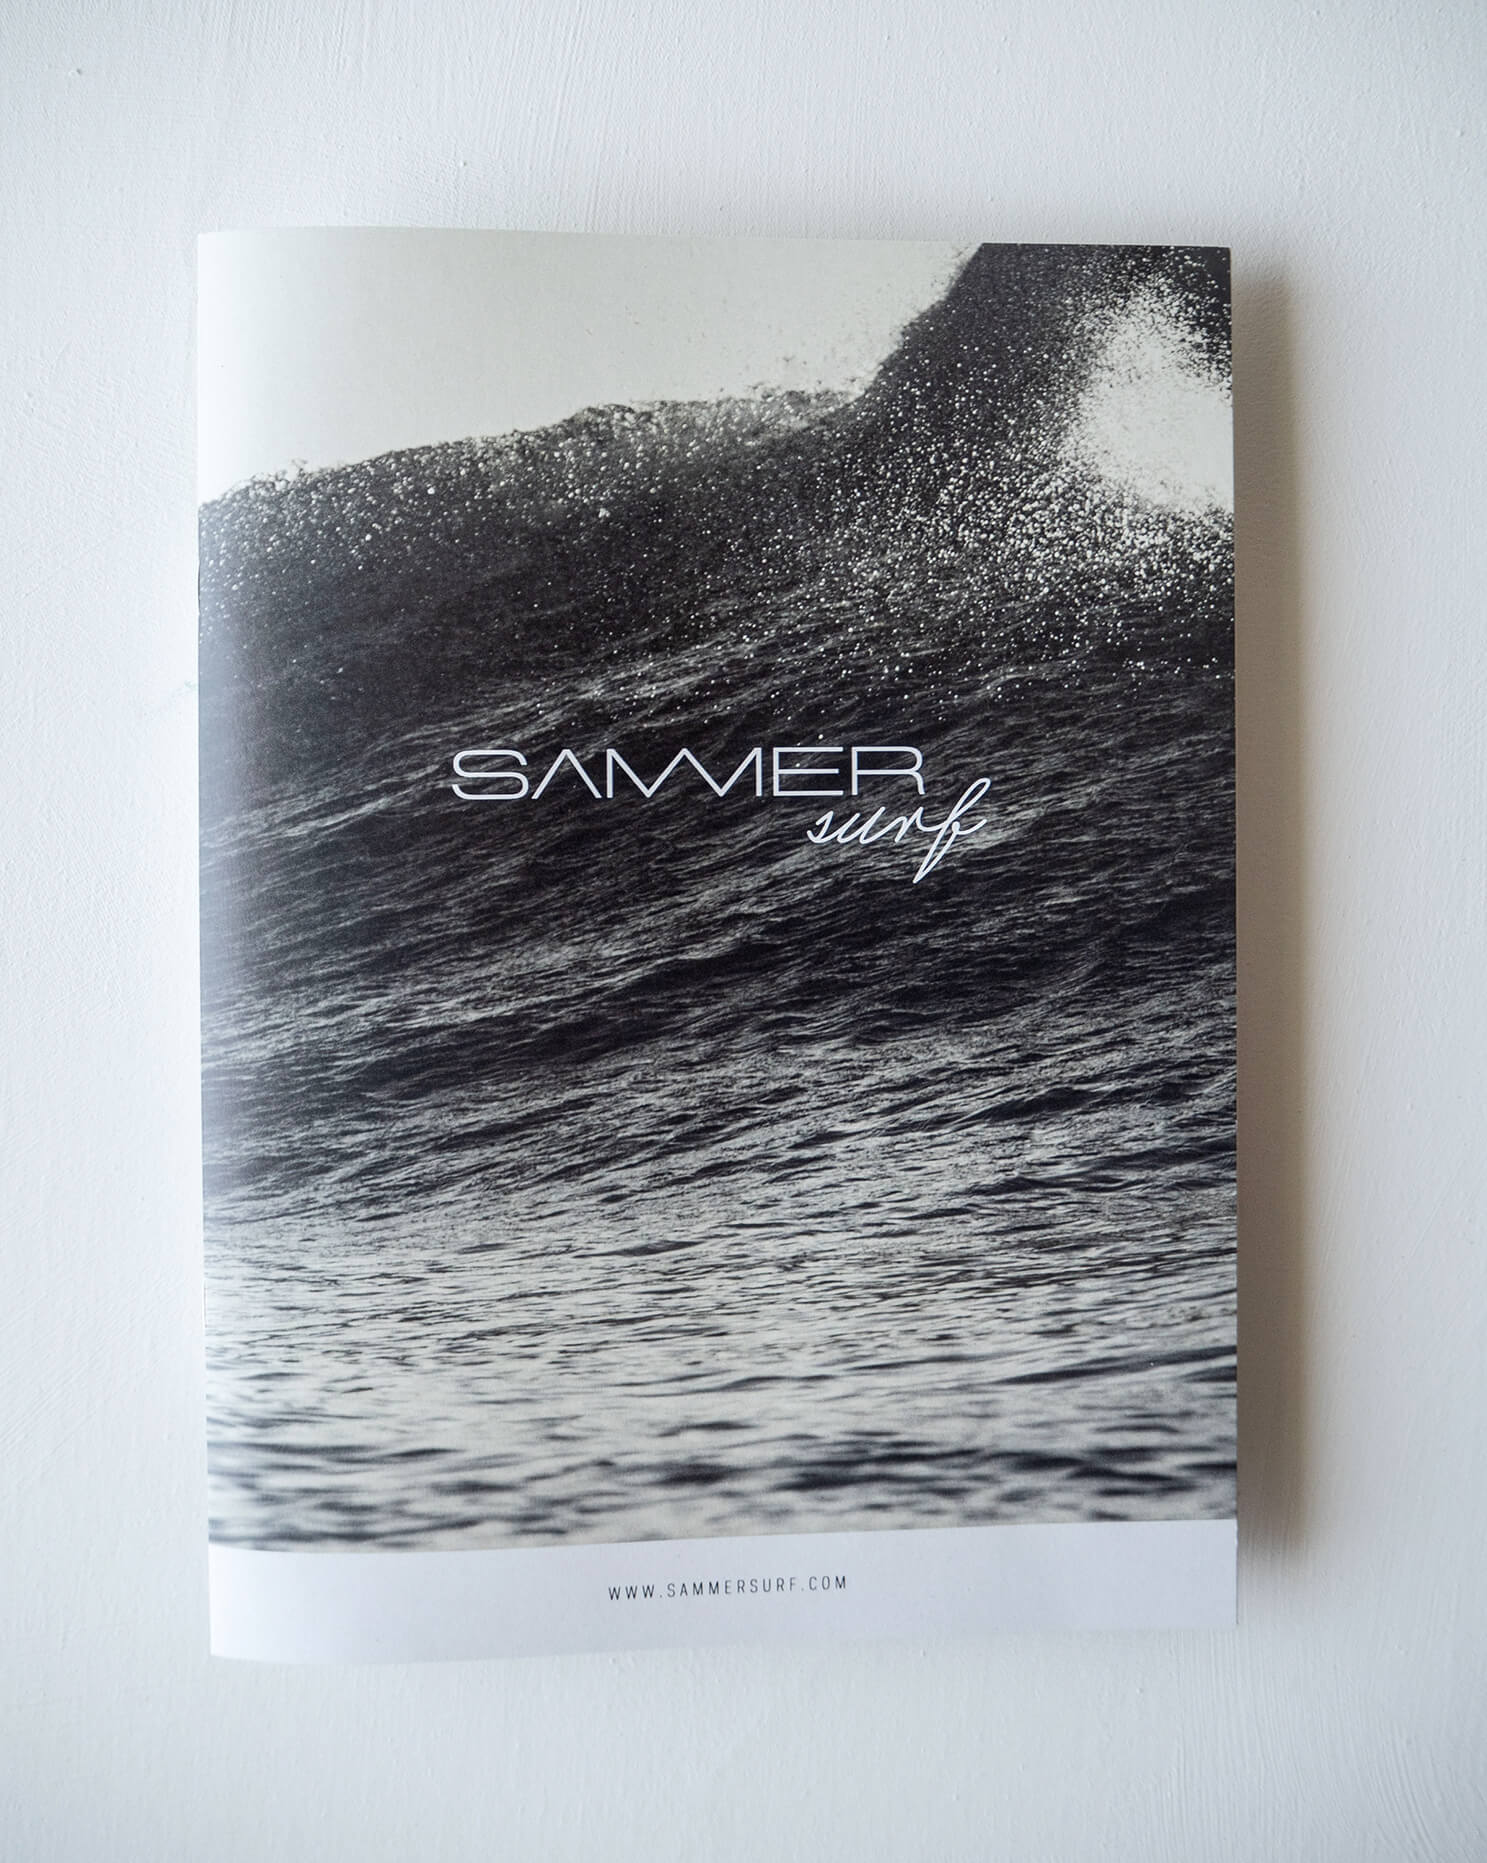 sammersurf, Branding, SUP, surfen, Chris Sammer, Corporate Design, Folder, Magazin, Editorialdesign, Typografie